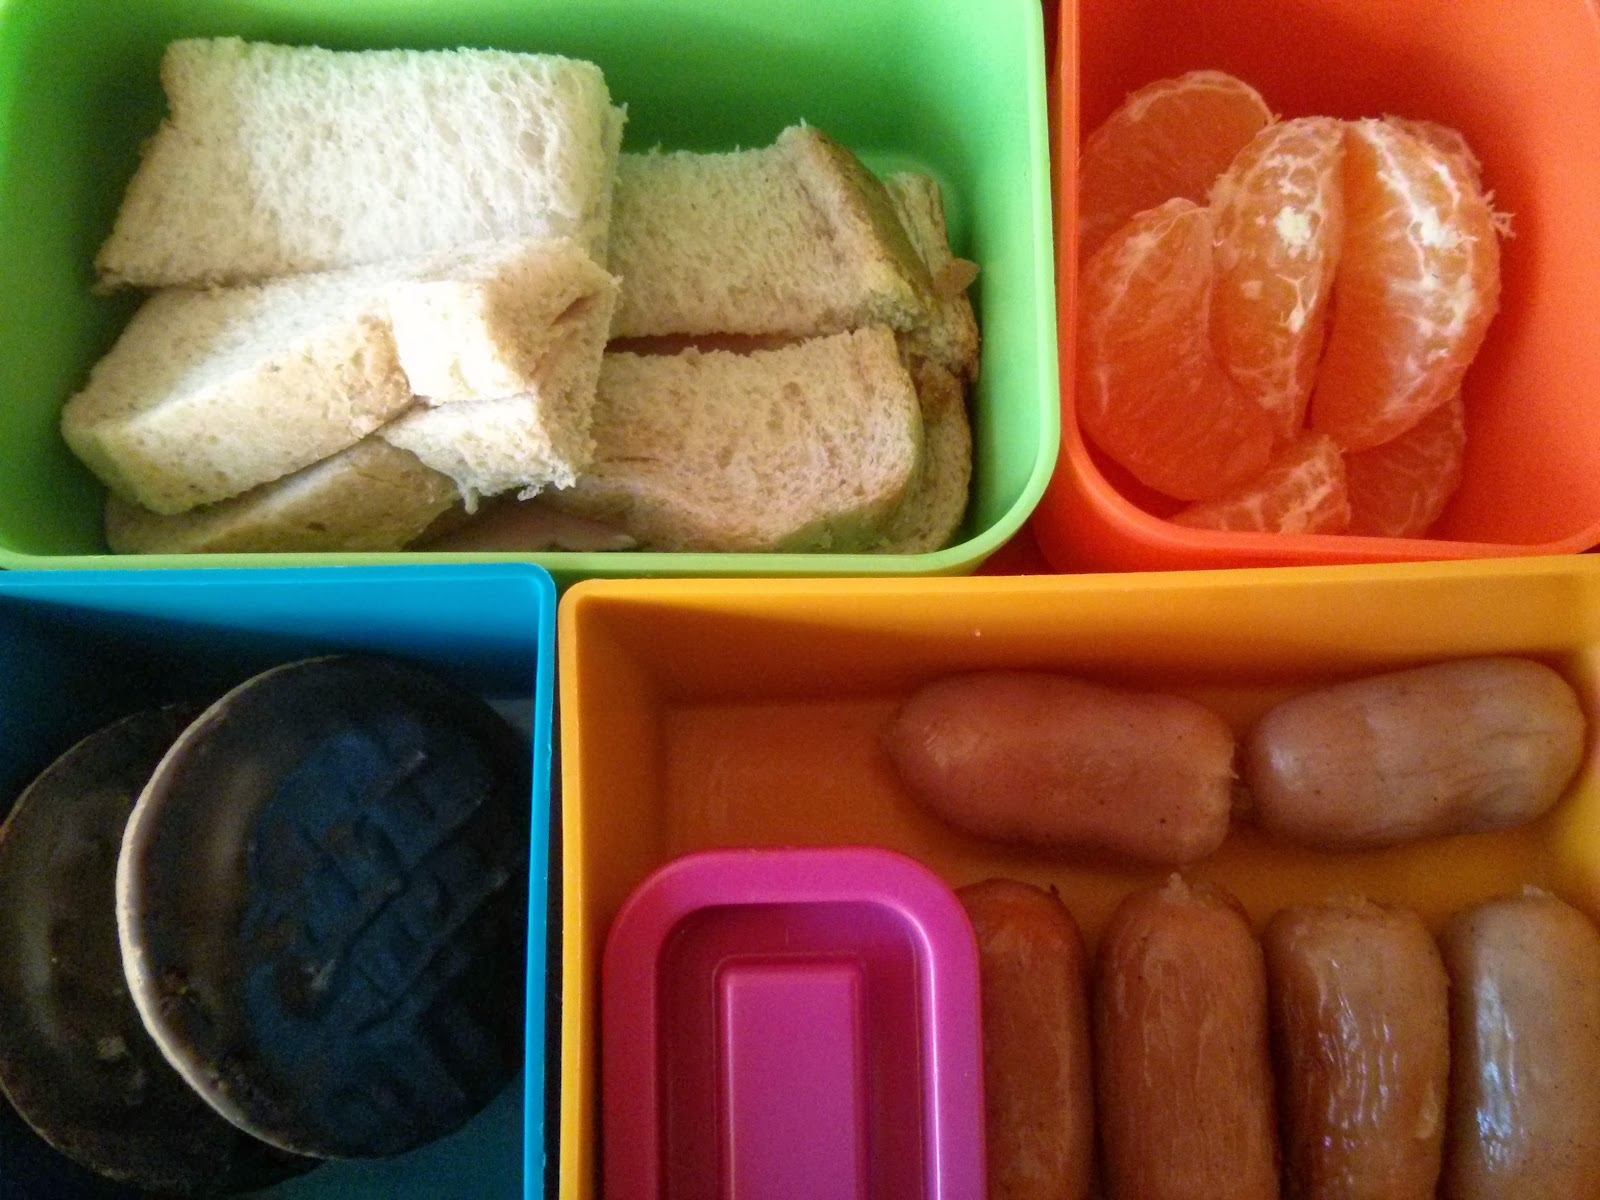 Finger Sandwich, Satsuma, Jaffa Cakes and mini sausages with ketchup